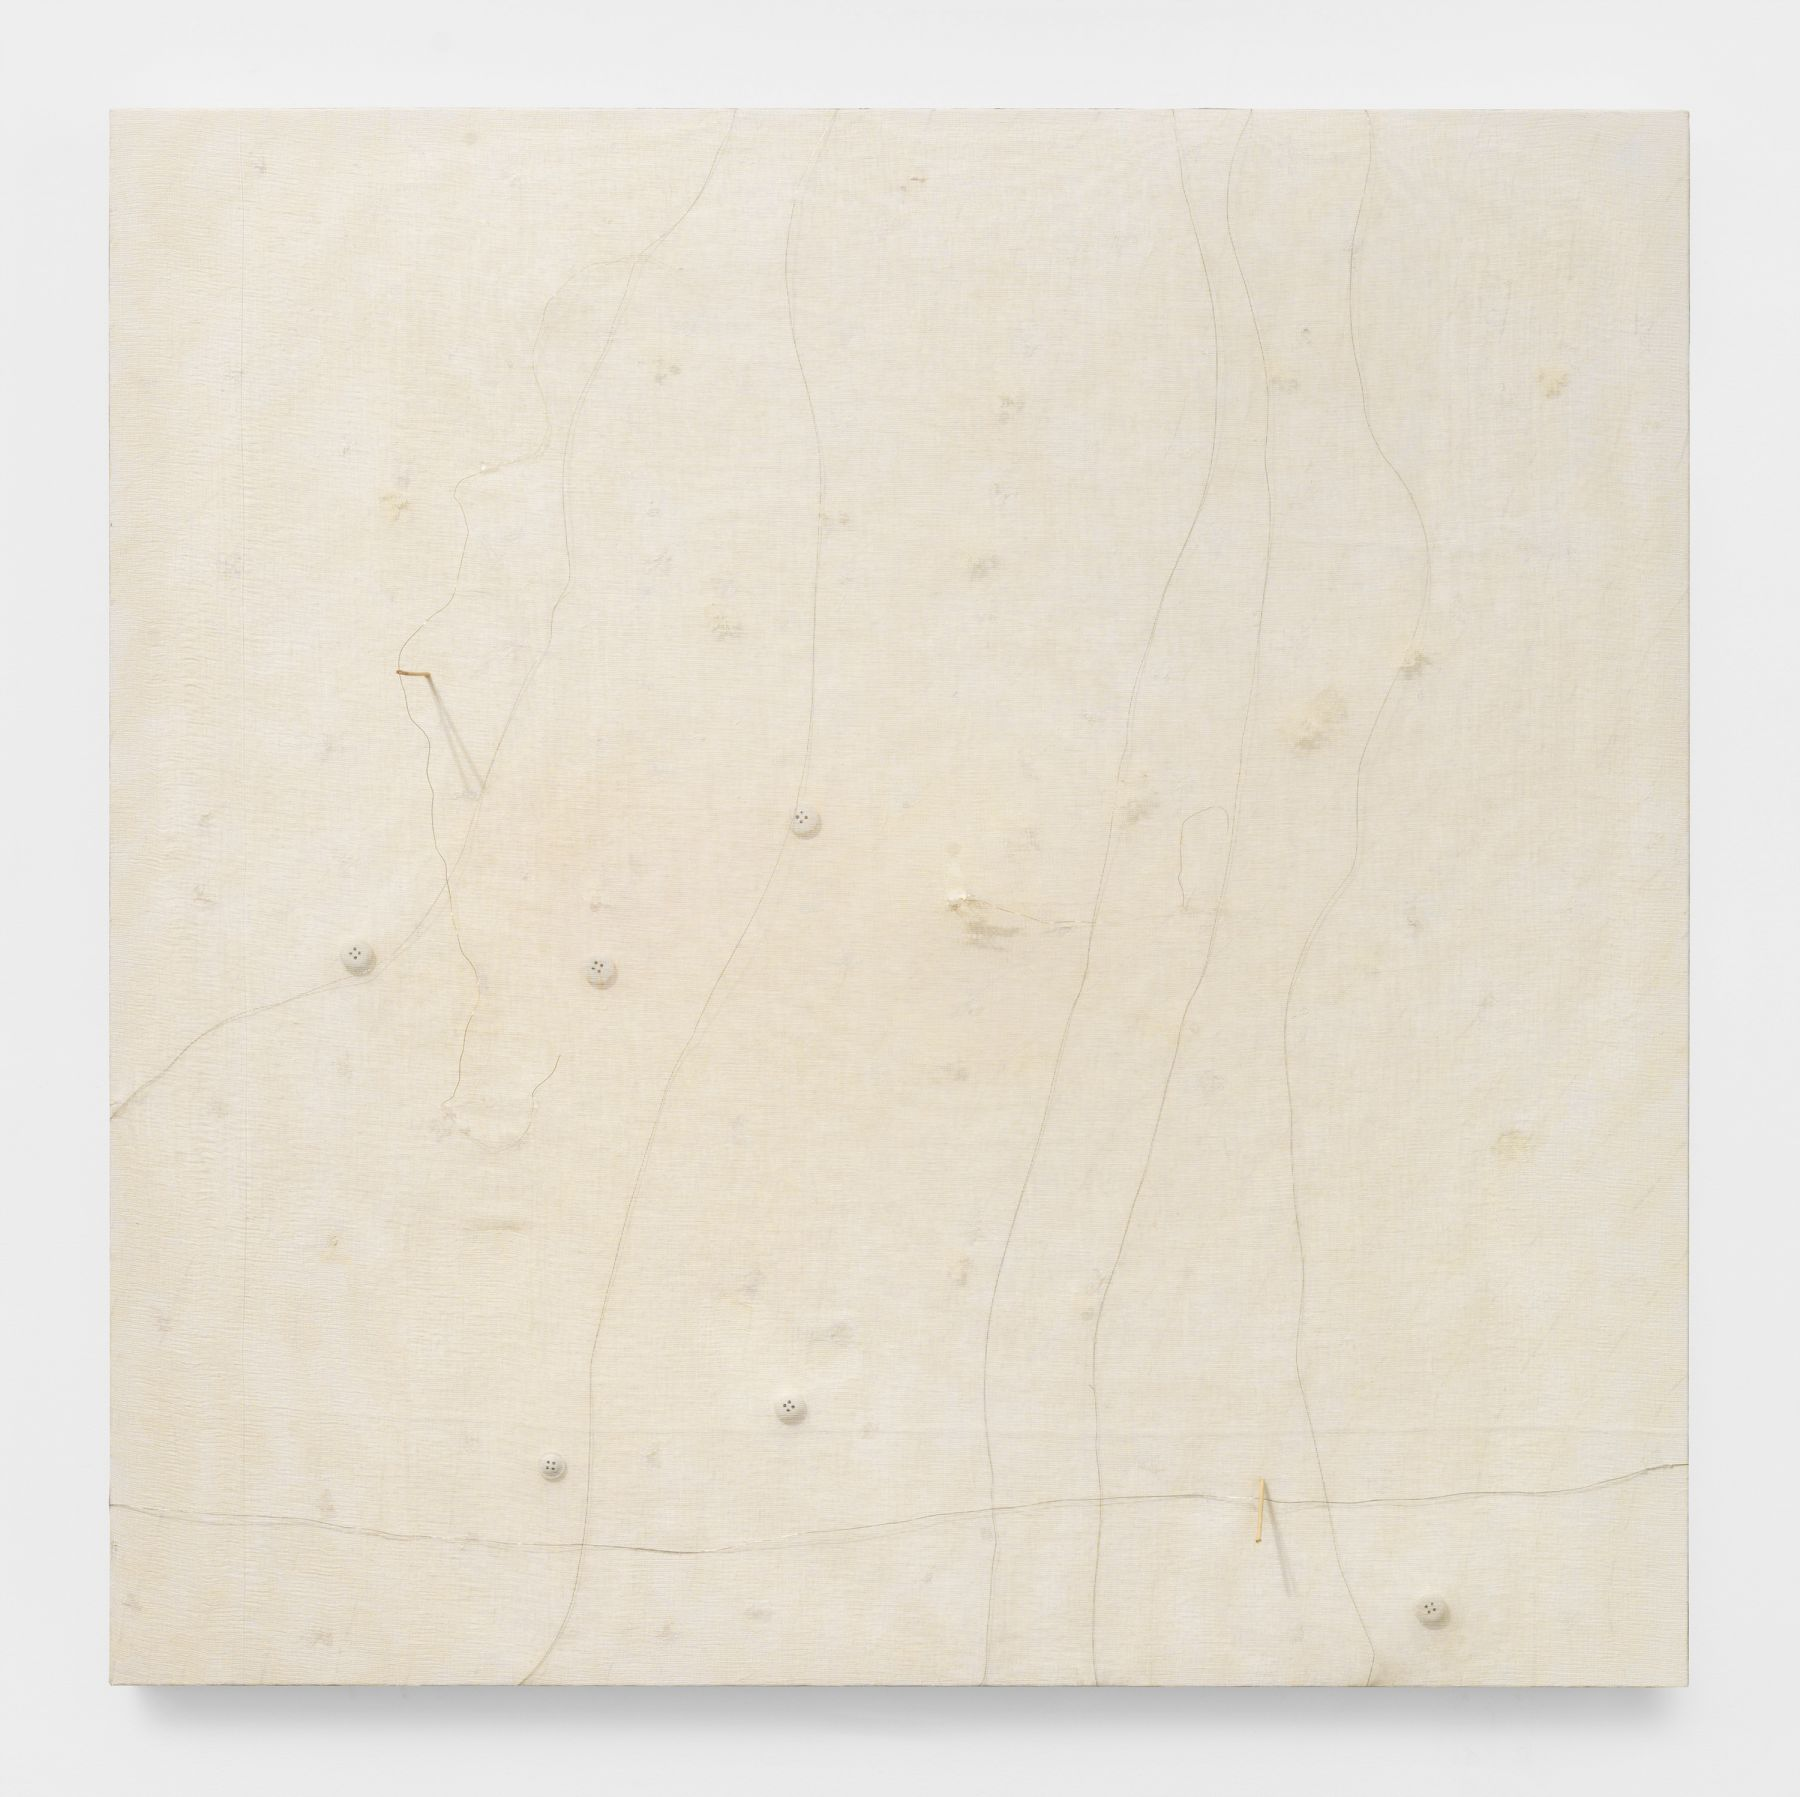 minimal painting by Pier Paolo Calzolari in a gallery in New York